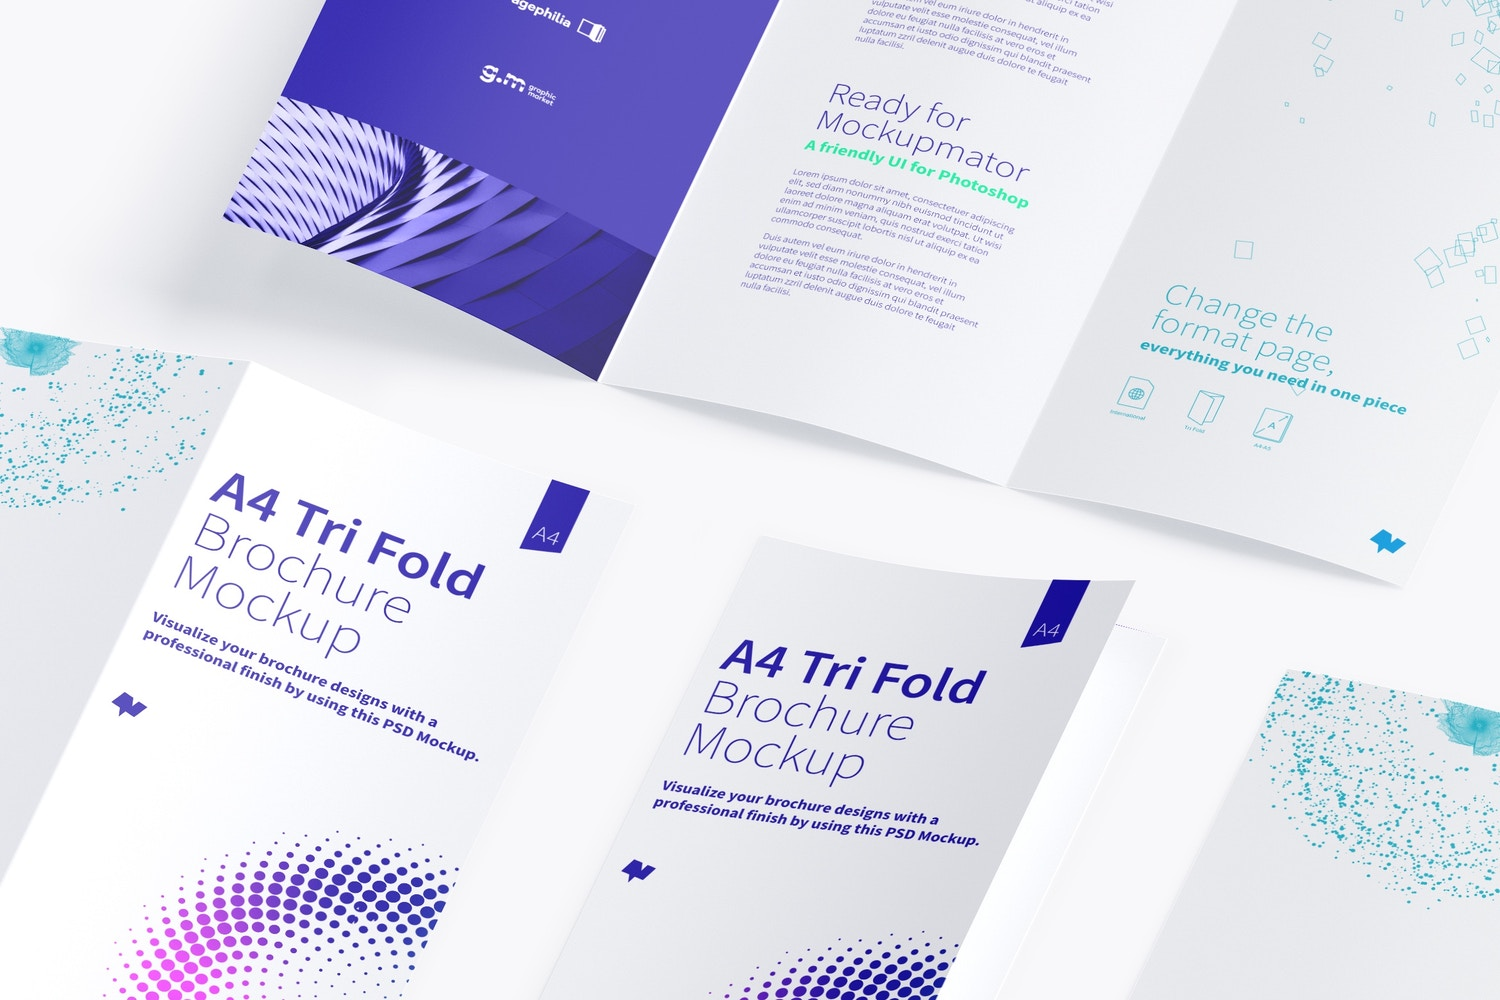 A4 Trifold Brochure Mockup 05 (3) by Original Mockups on Original Mockups